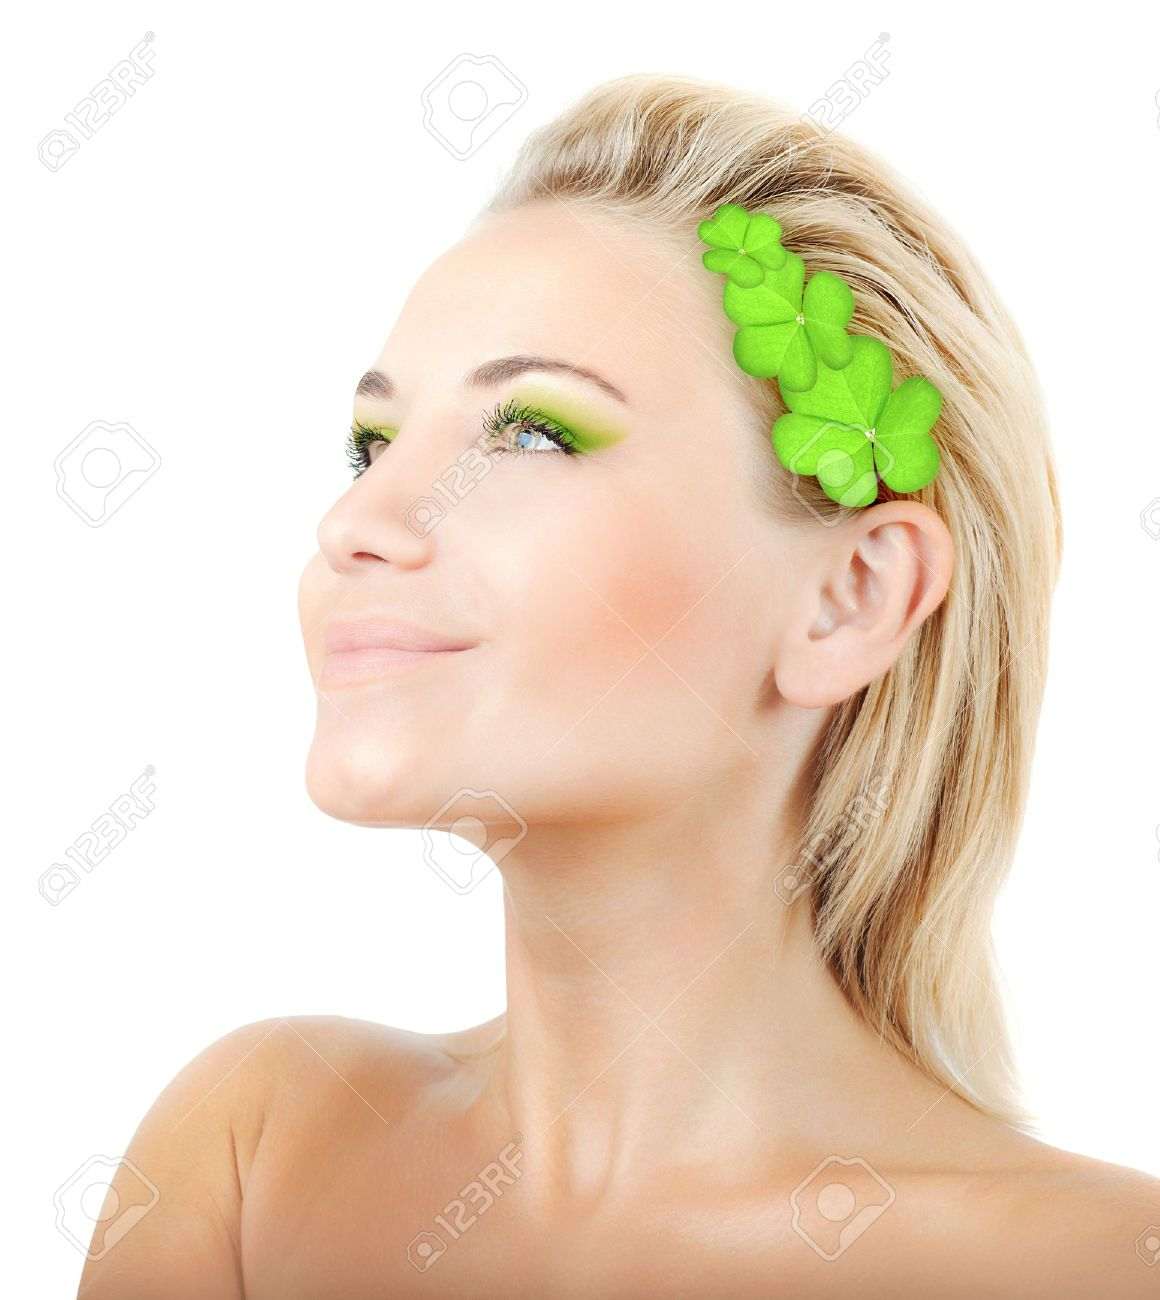 Beautiful woman with wreath of clover, fresh green plant leaves in blond hair, female face portrait isolated over white background, pretty girl with bright makeup, st. Patrick's day, spring holiday Stock Photo - 12589153